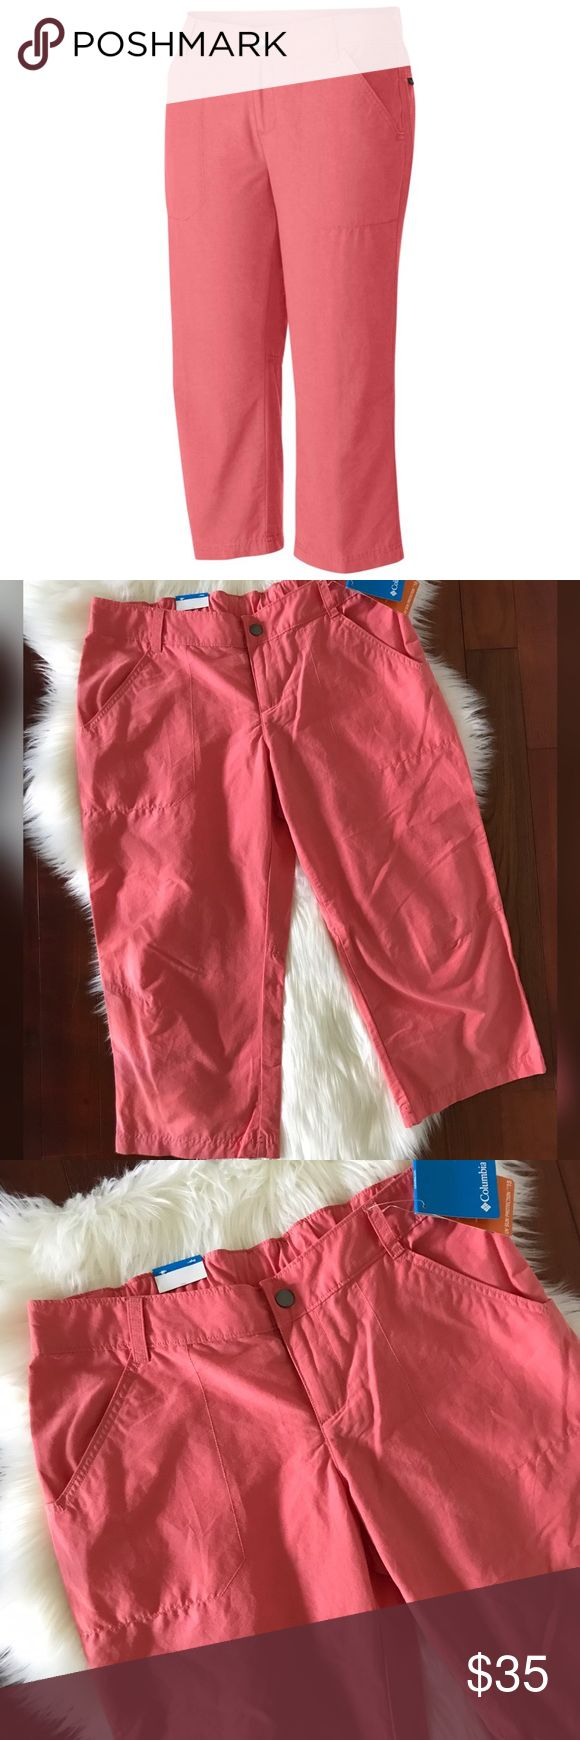 """Columbia Coral Capris Pants Size 10 Brand new pants from Columbia.  Regular fit.  Capris style pants.  Size 10.  Length 20"""".  Color: Coral Bloom. Columbia Pants Capris"""